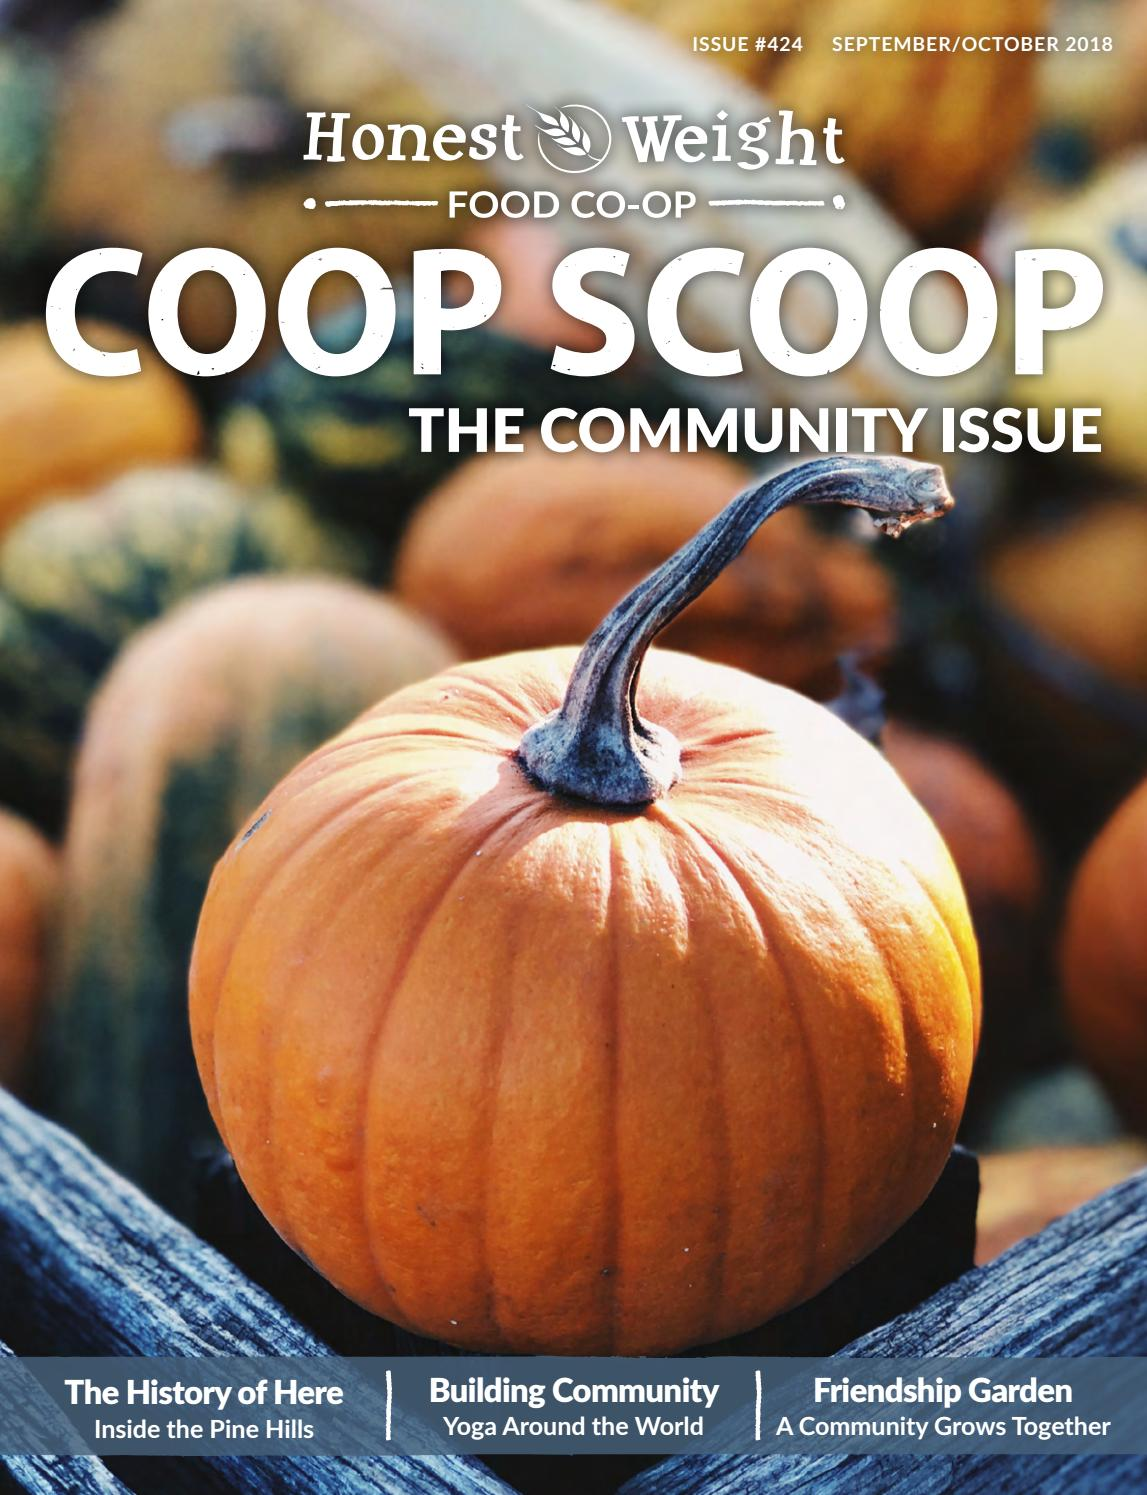 Honest Weight Coop Scoop: The Community Issue by Honest Weight Food Co-op - Issuu